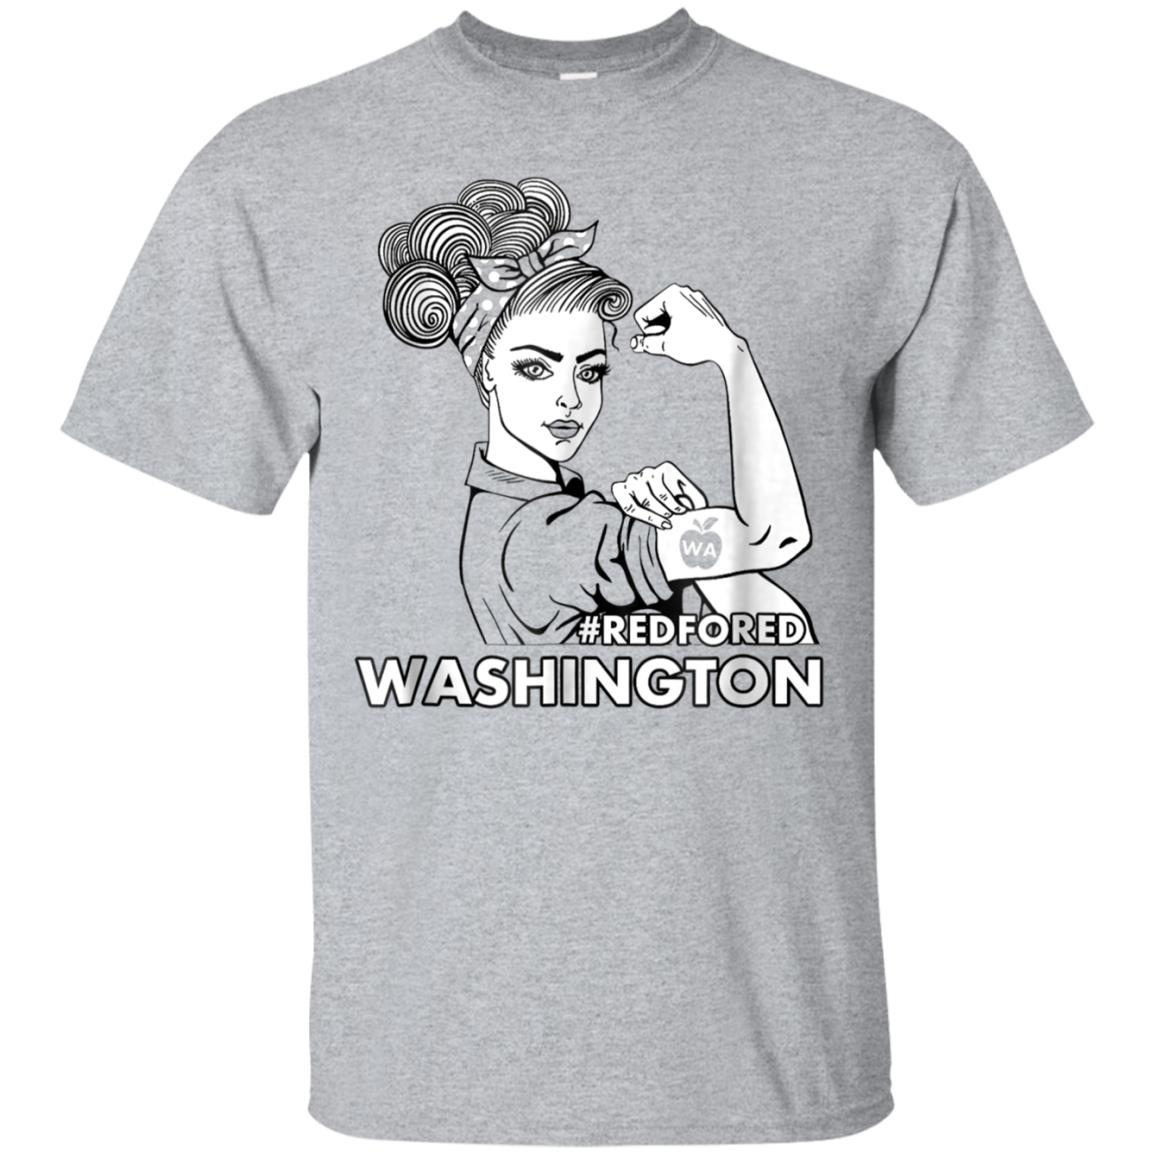 WA redfored red for ed Washington teacher shirt 99promocode